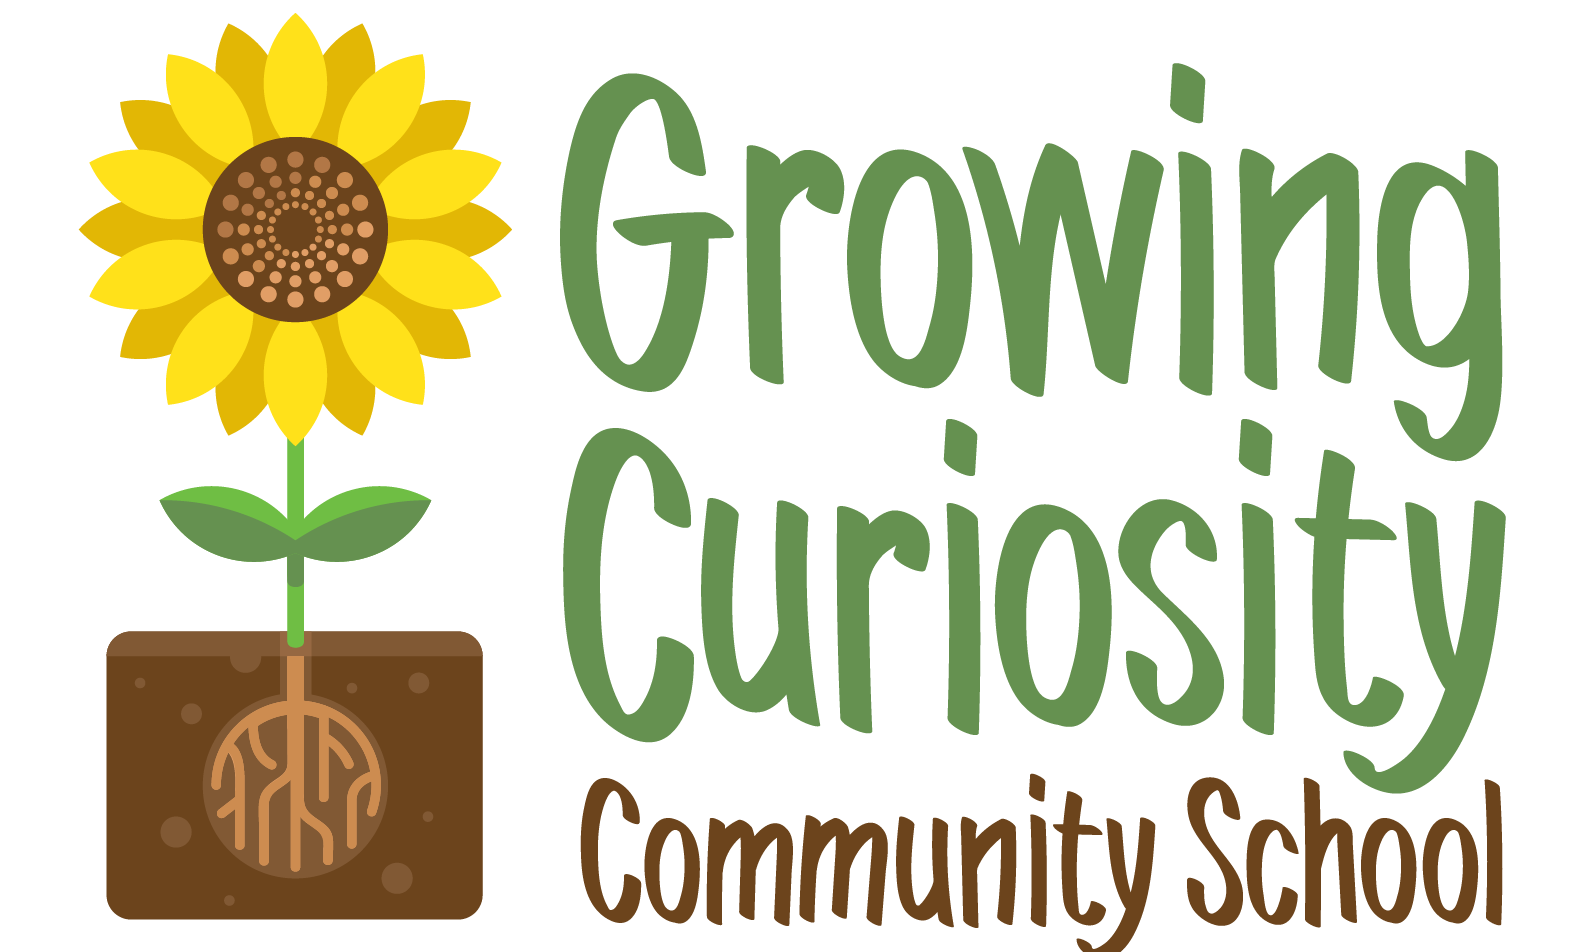 Community clipart community outreach. Growing curiosity blog learning